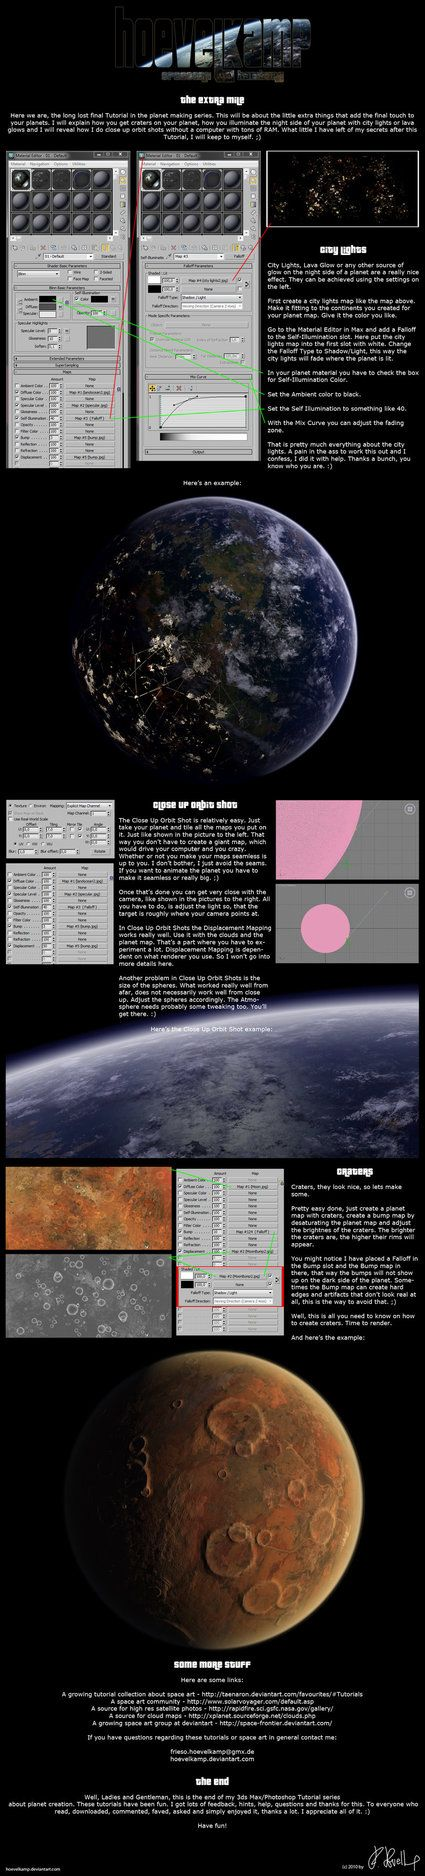 3ds Max Planets - The End by hoevelkamp